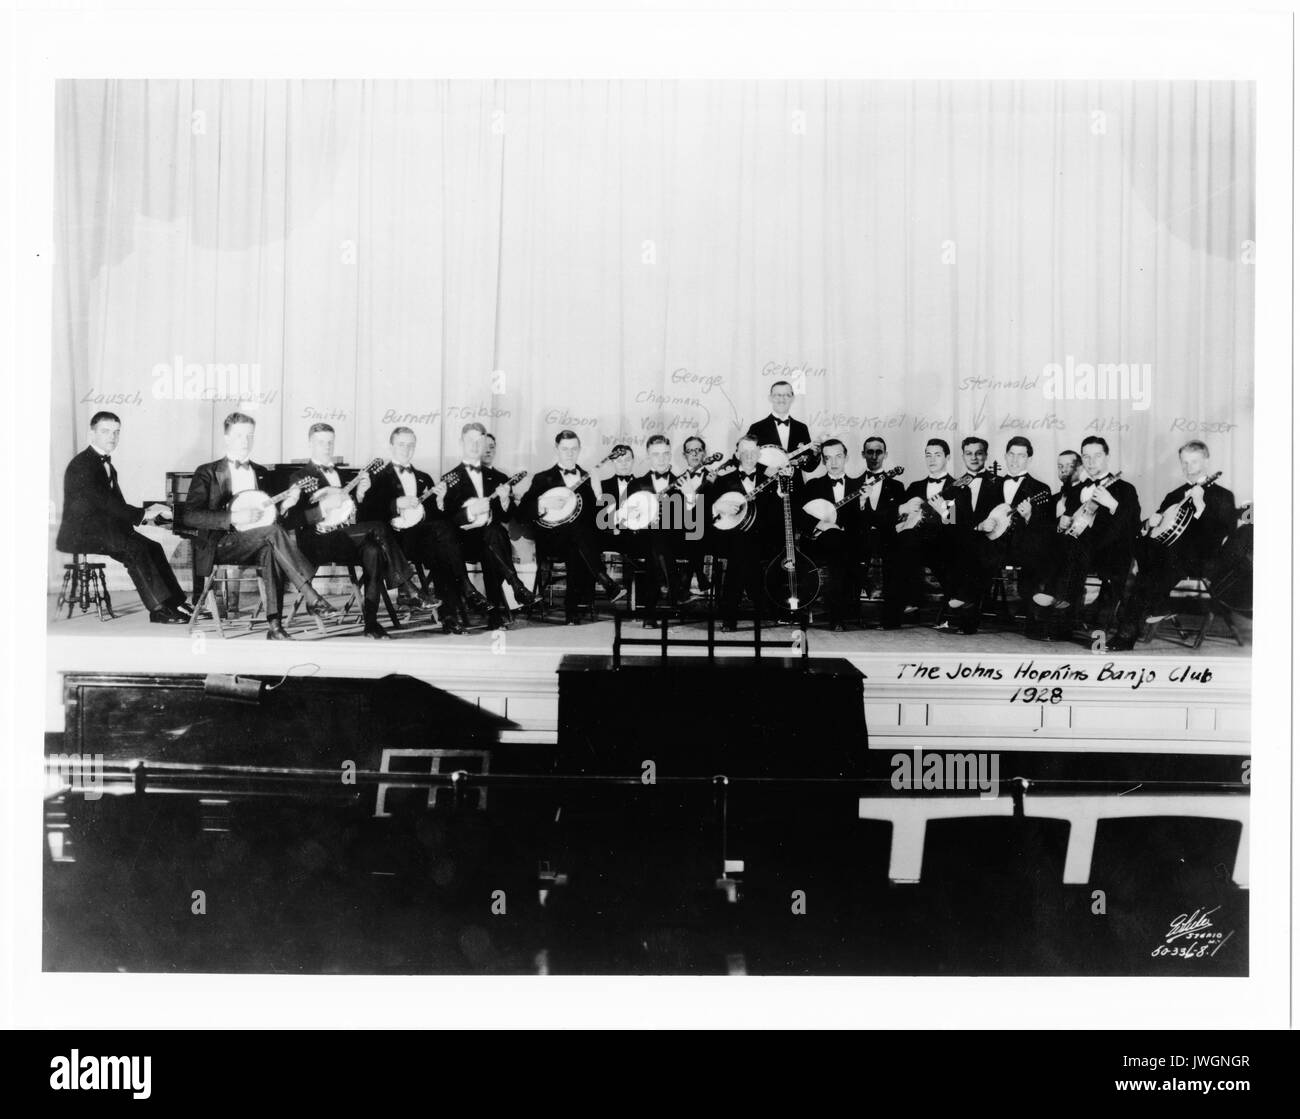 Banjo Club Banjo Club, all members identified, sitting on stage with instruments, 1928. - Stock Image